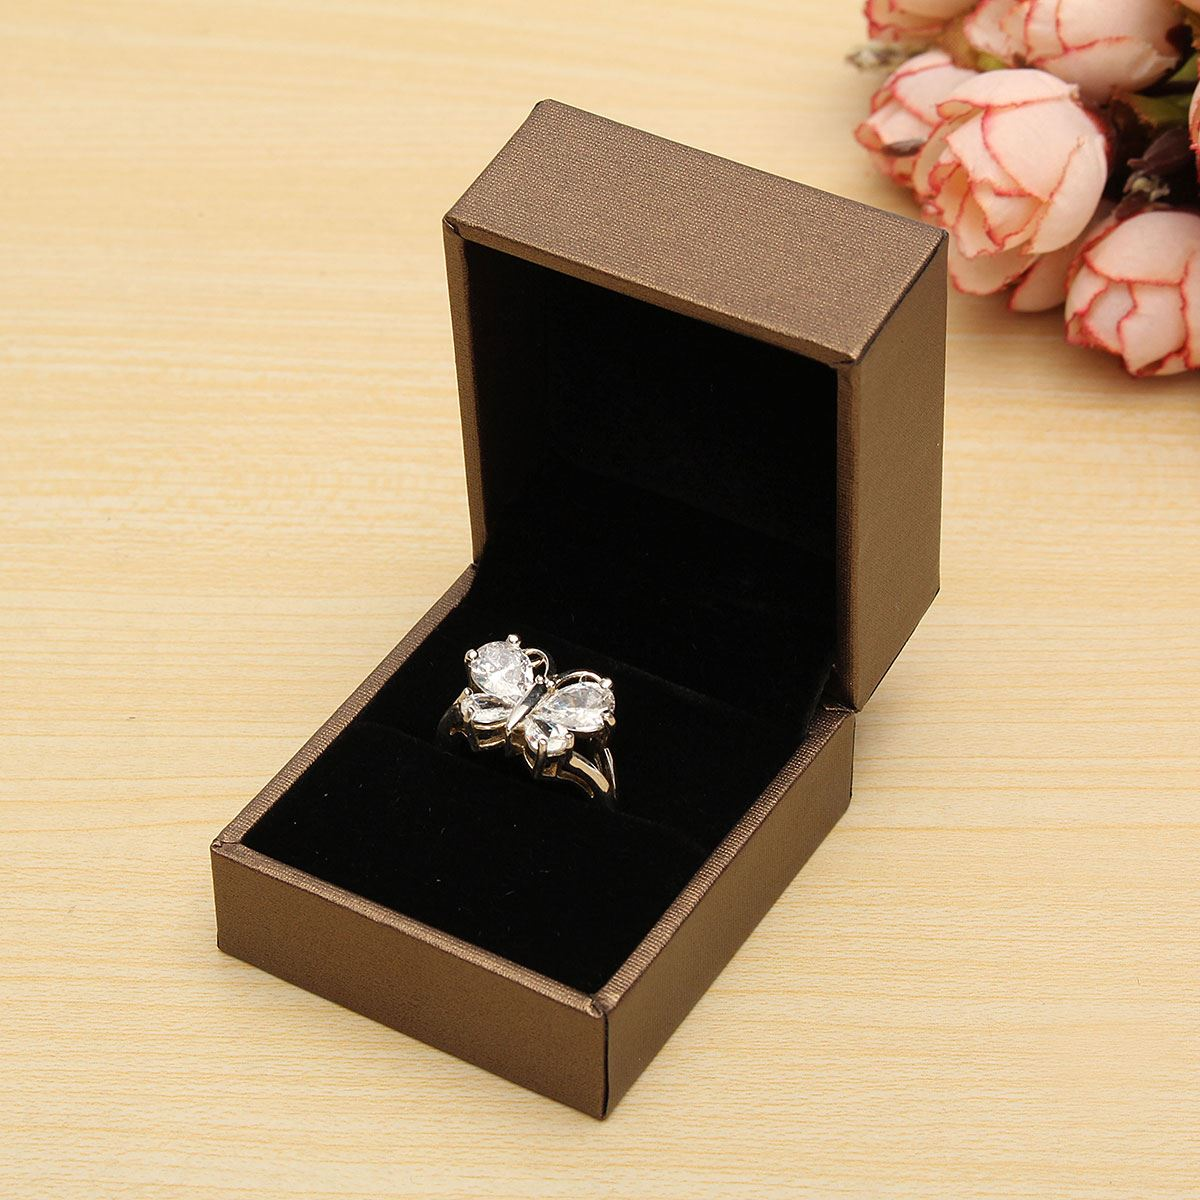 Wedding Gift Storage Box : New Jewelry Packaging Gift Storage Box Wedding Bracelet Earrings Ring ...